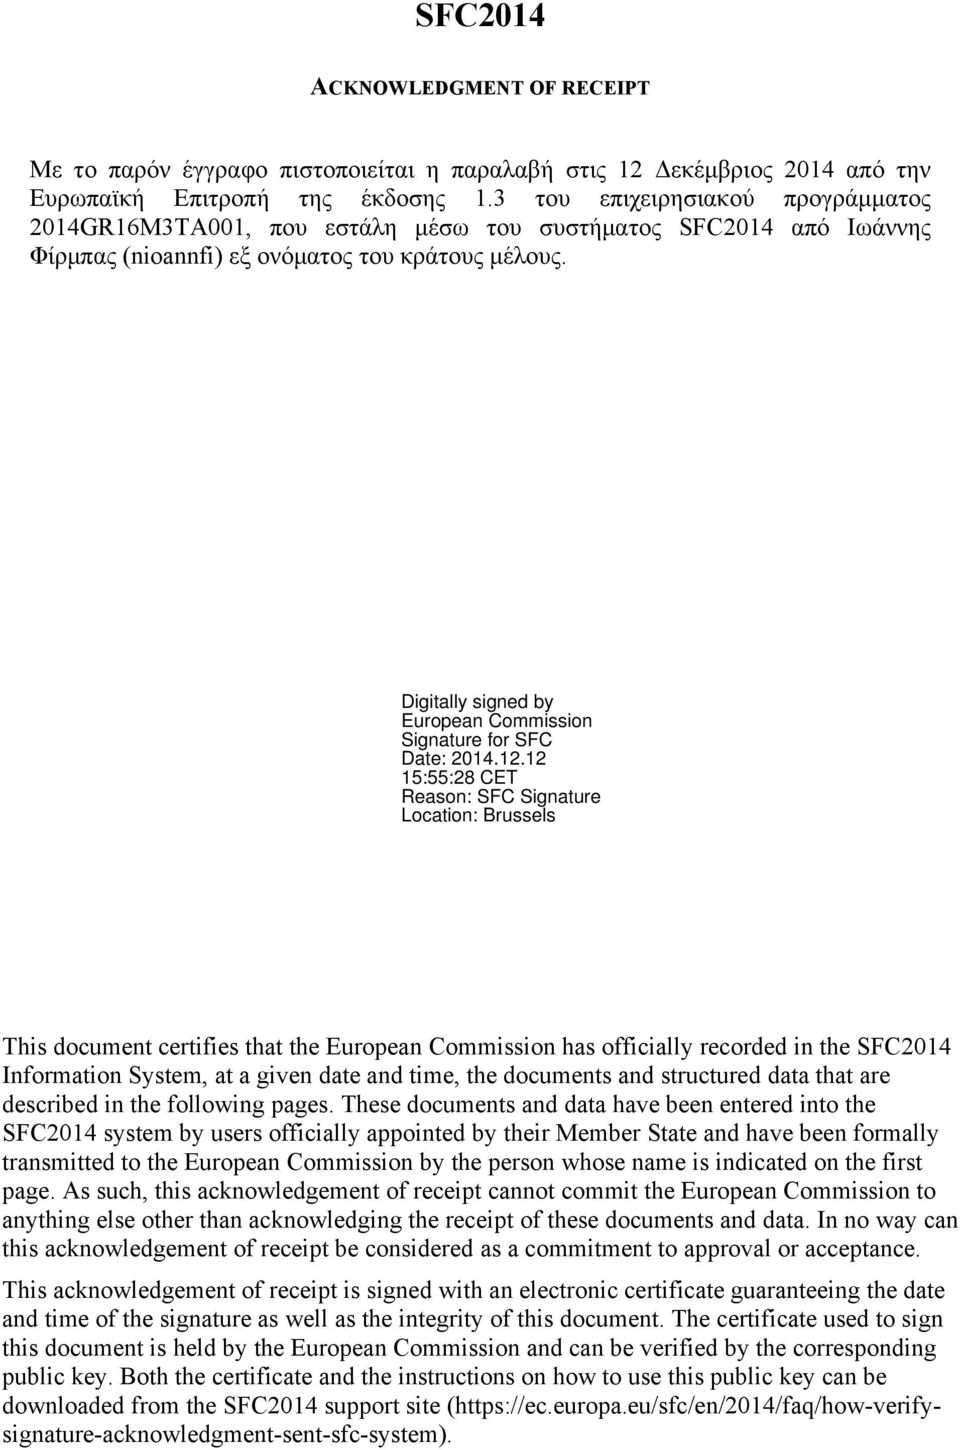 This document certifies that the European Commission has officially recorded in the SFC2014 Information System, at a given date and time, the documents and structured data that are described in the